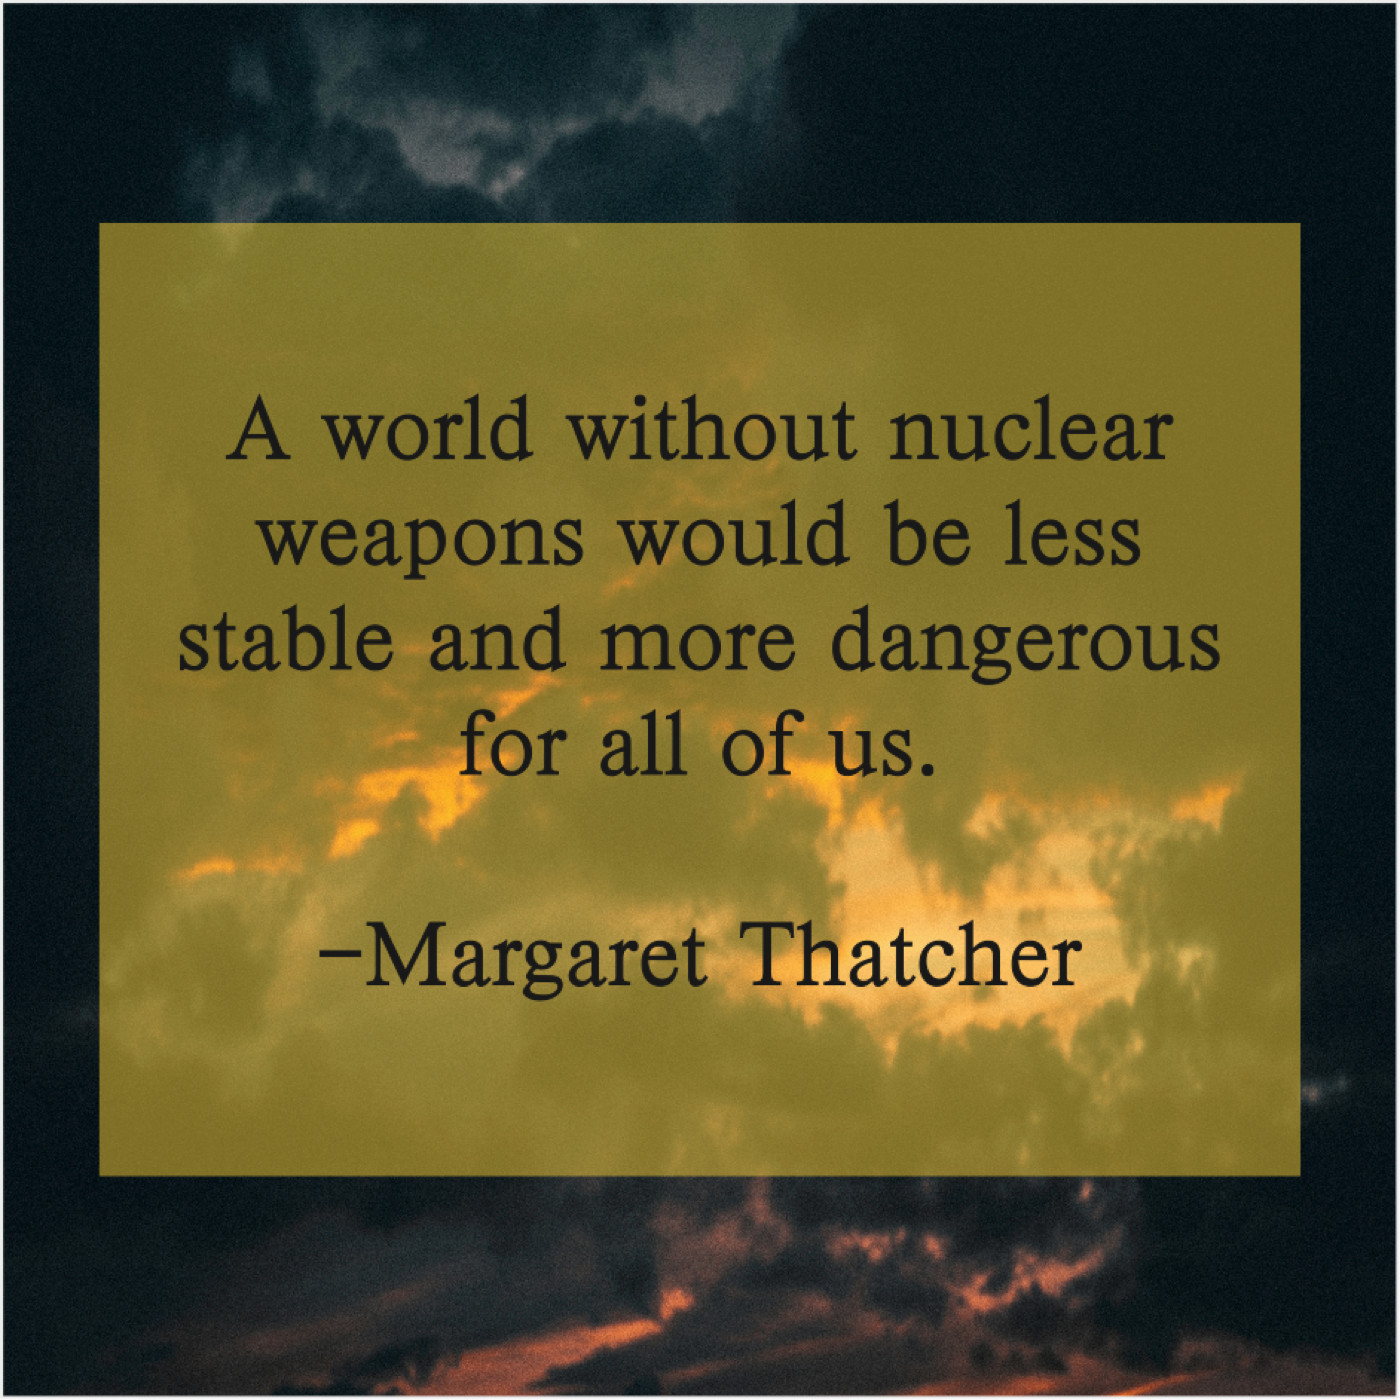 Margaret Thatcher A World Without Nuclear Weapons